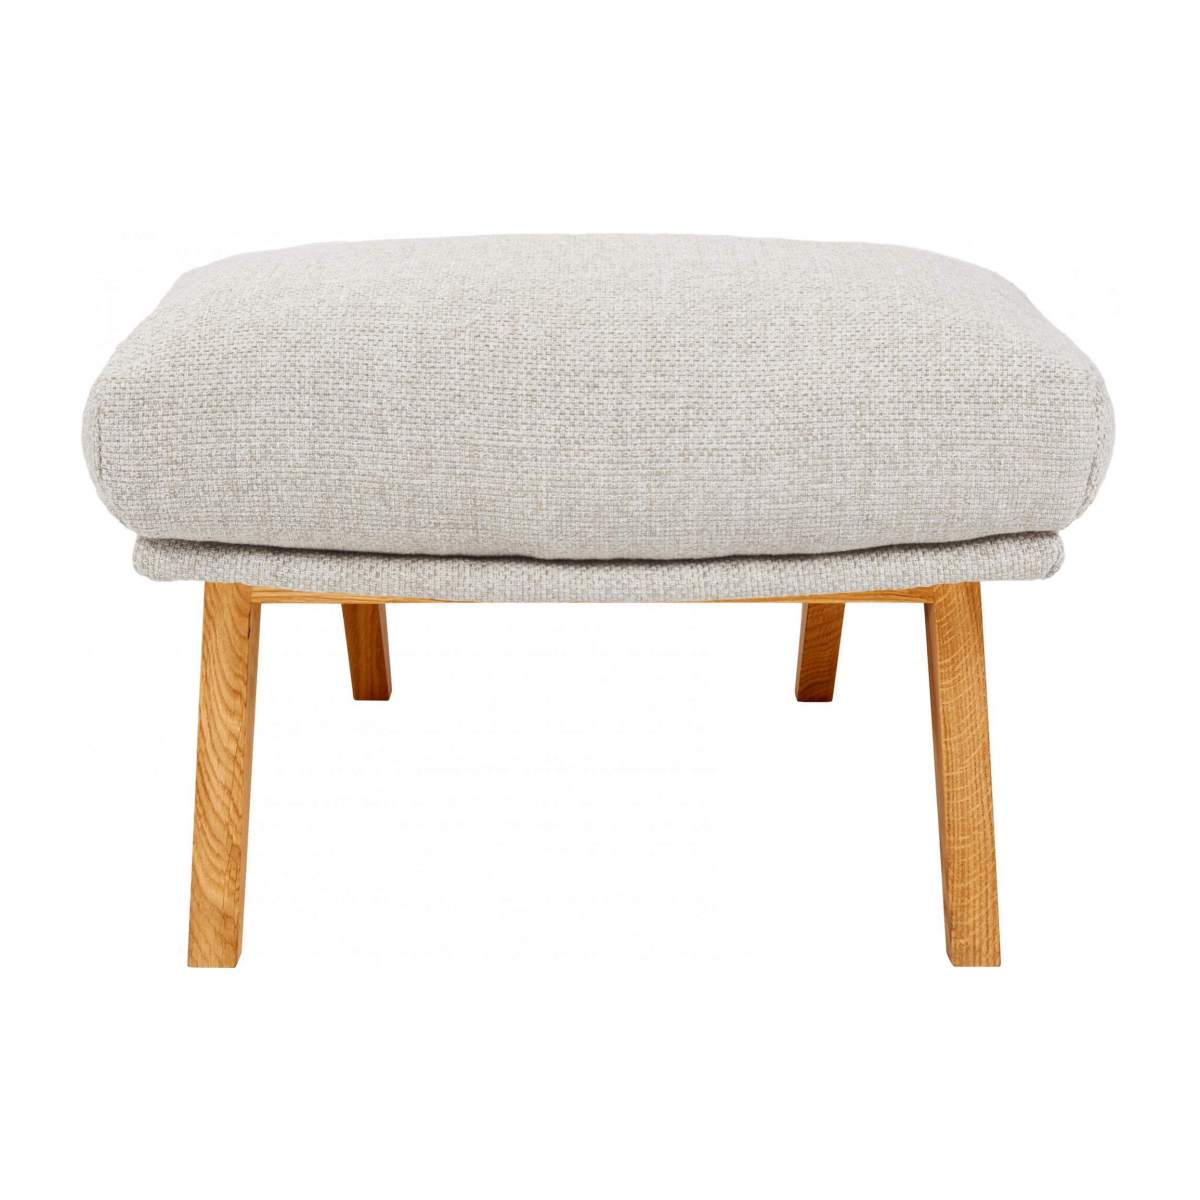 Footstool in Lecce fabric, nature with oak legs n°1